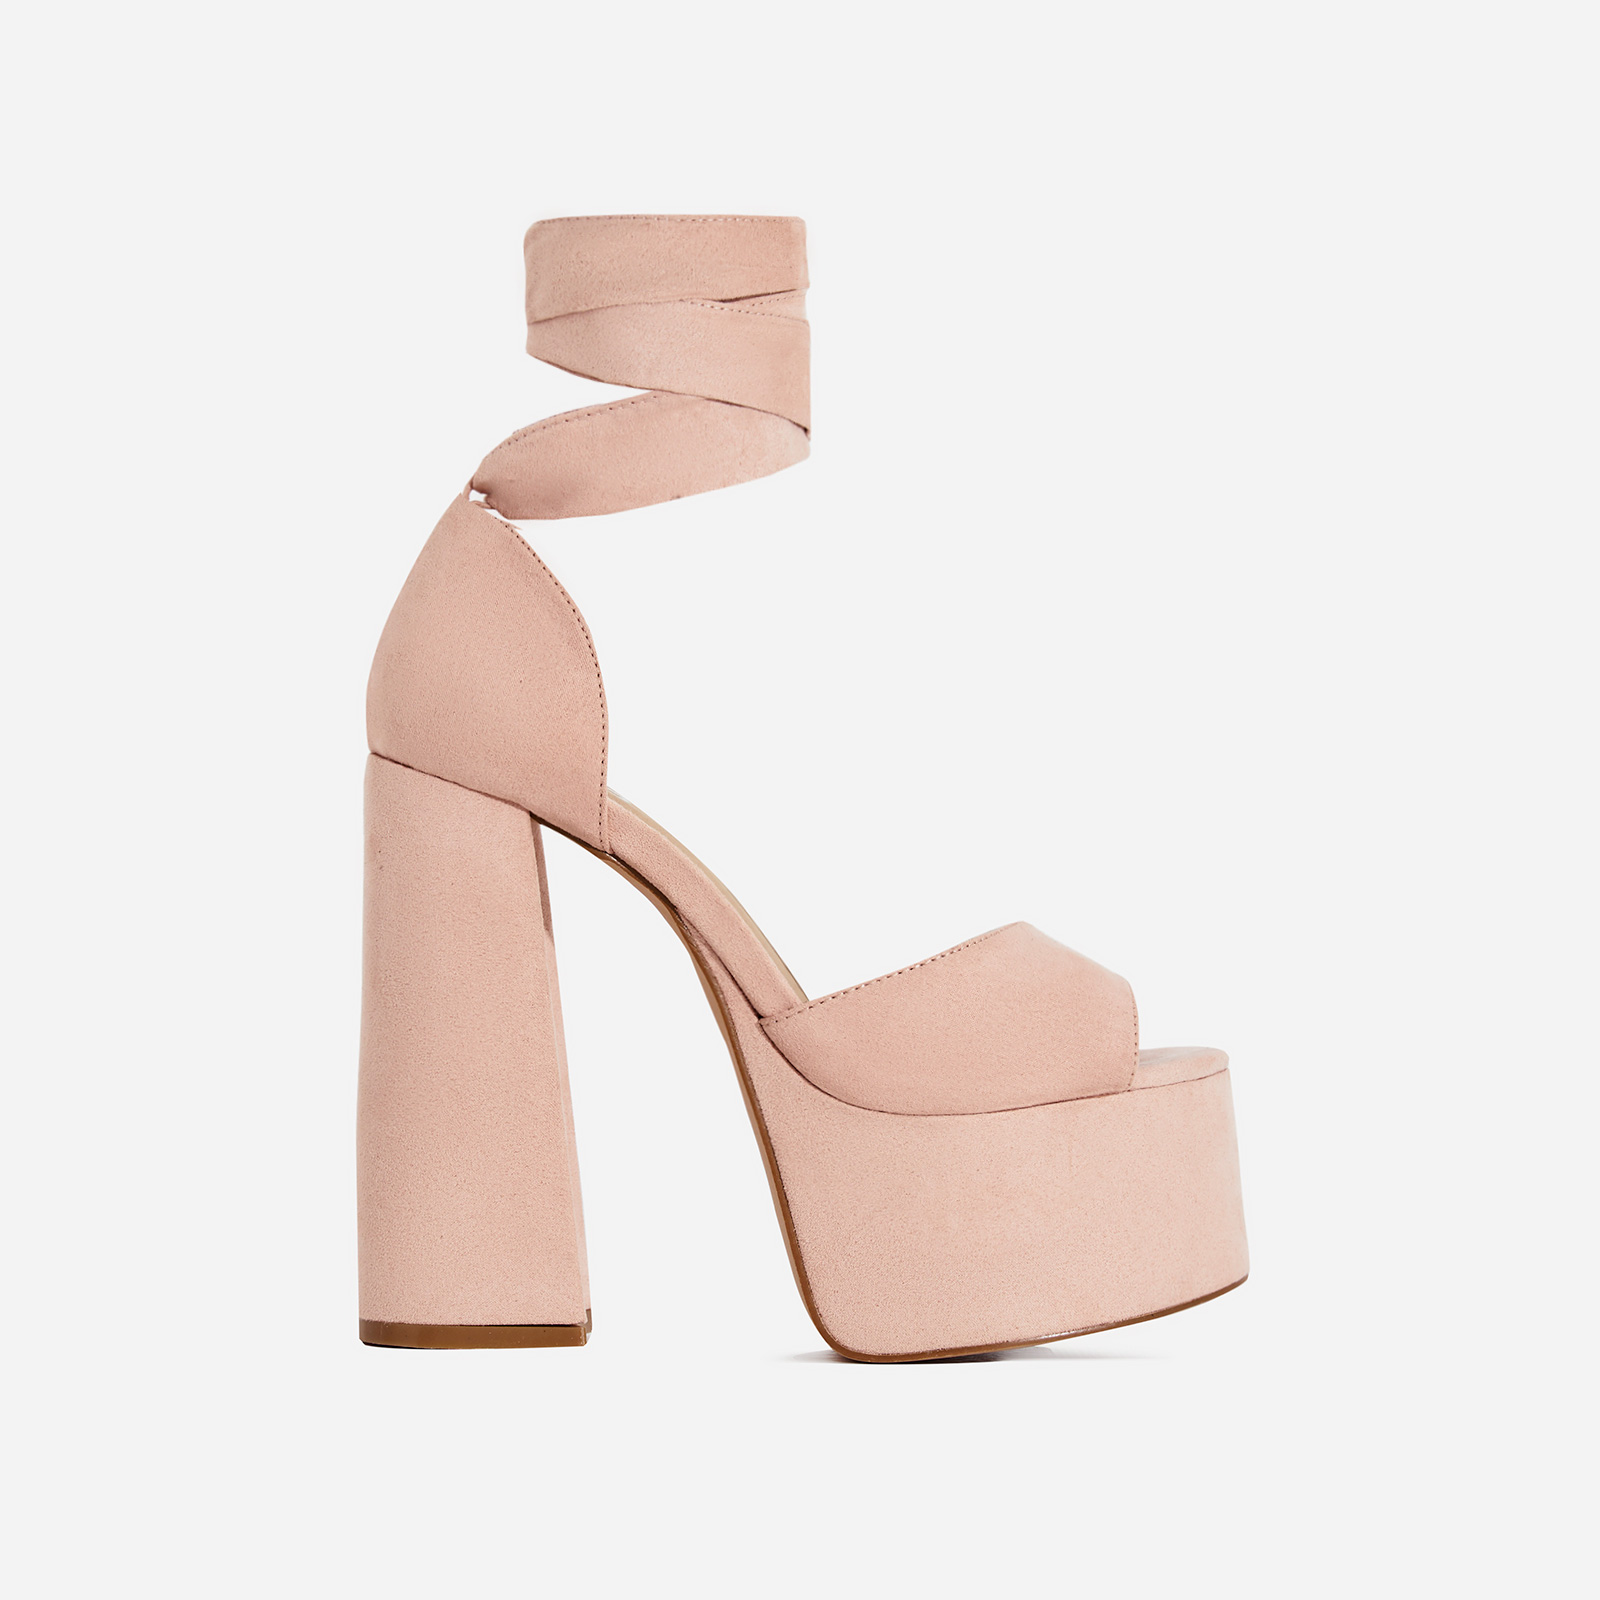 Sarah Lace Up Platform Heel In Blush Pink Faux Suede